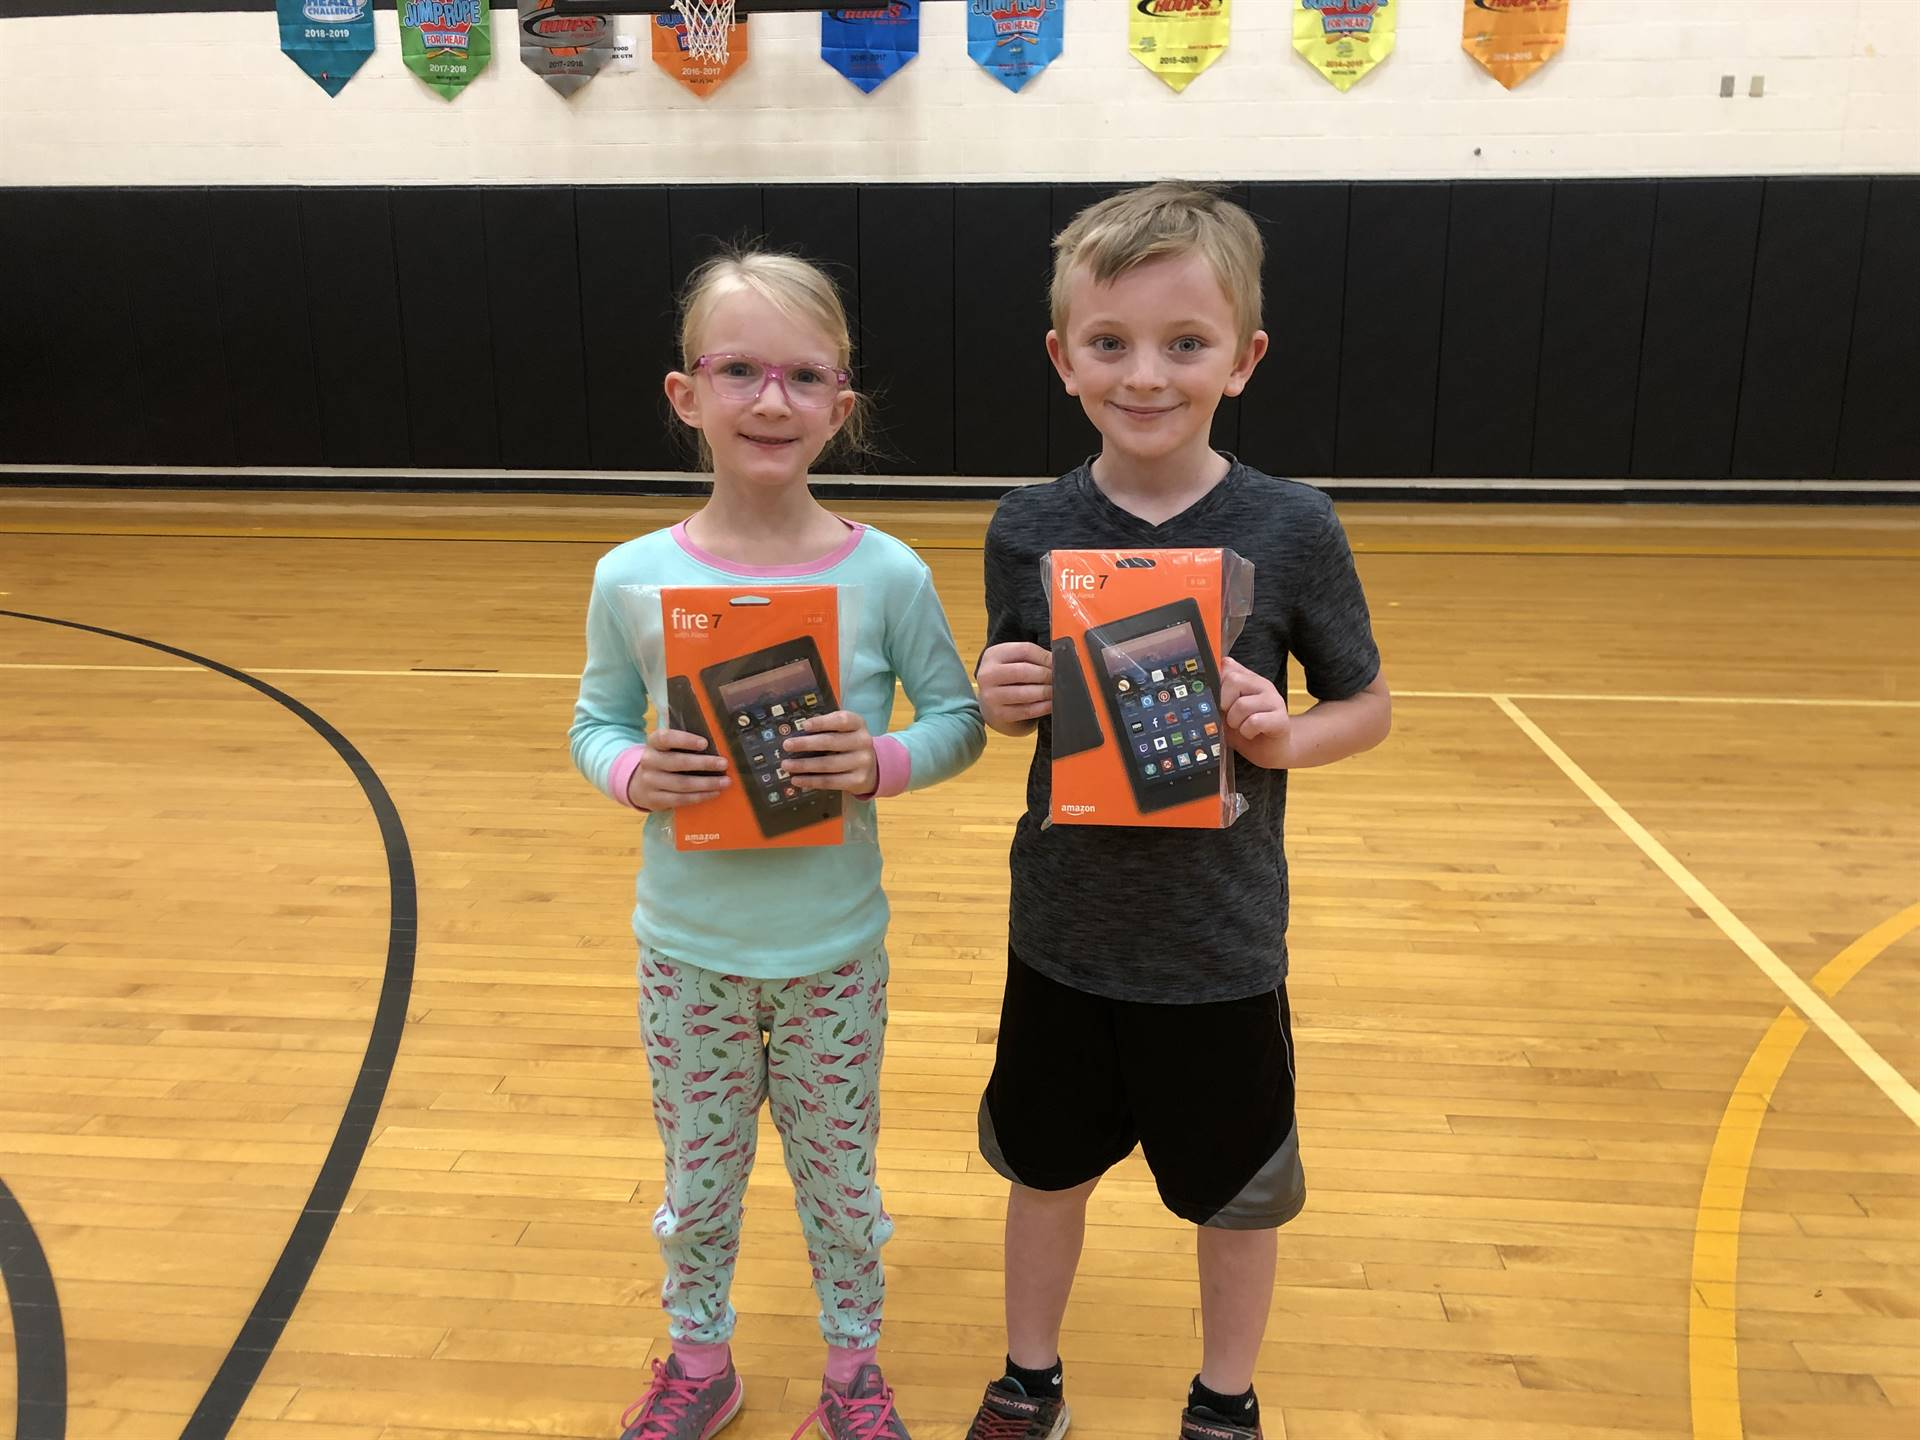 Kindle Fire Winners - Adrienne Holuta & Michael Caldwell